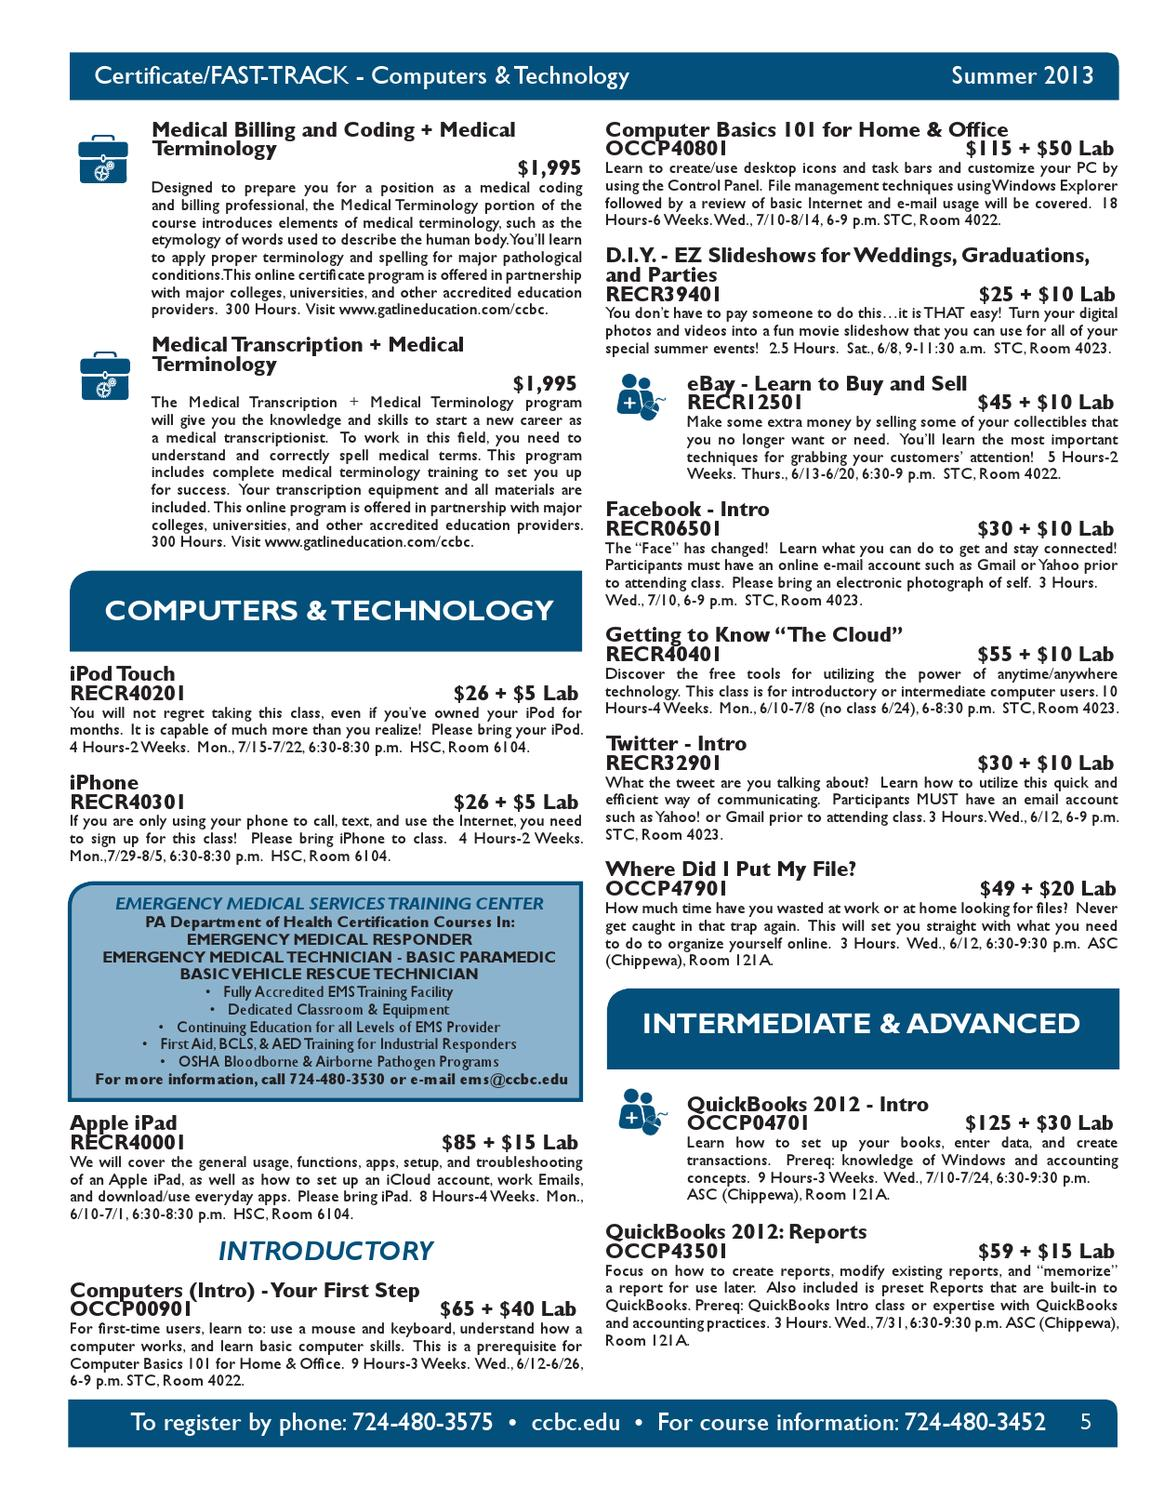 Community College Of Beaver County Summer Non Credit Course Schedule